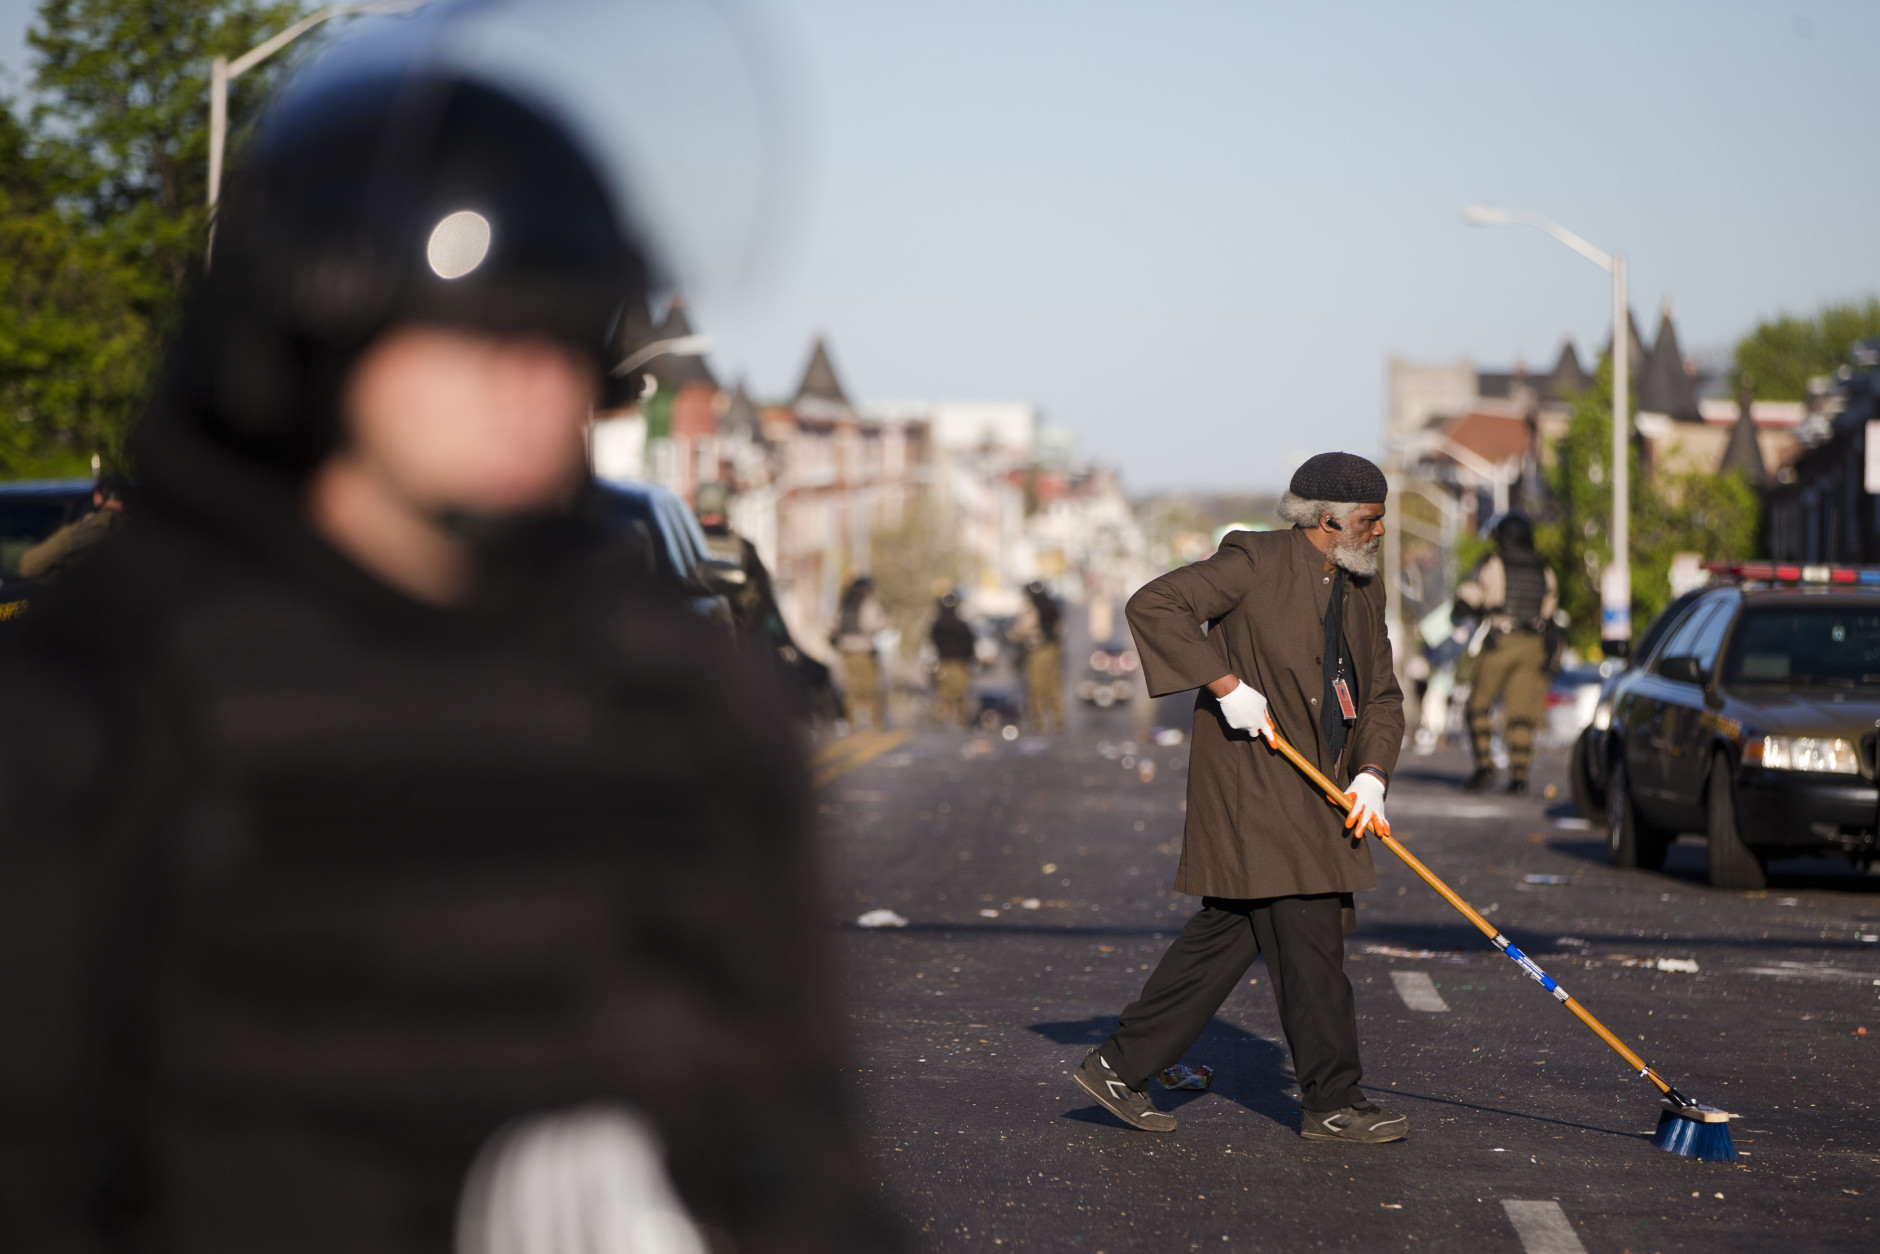 Residents clean streets as law enforcement officers stand guard, Tuesday, April 28, 2015, in Baltimore, in the aftermath of rioting following Monday's funeral of Freddie Gray, who died in police custody. (AP Photo/Matt Rourke)